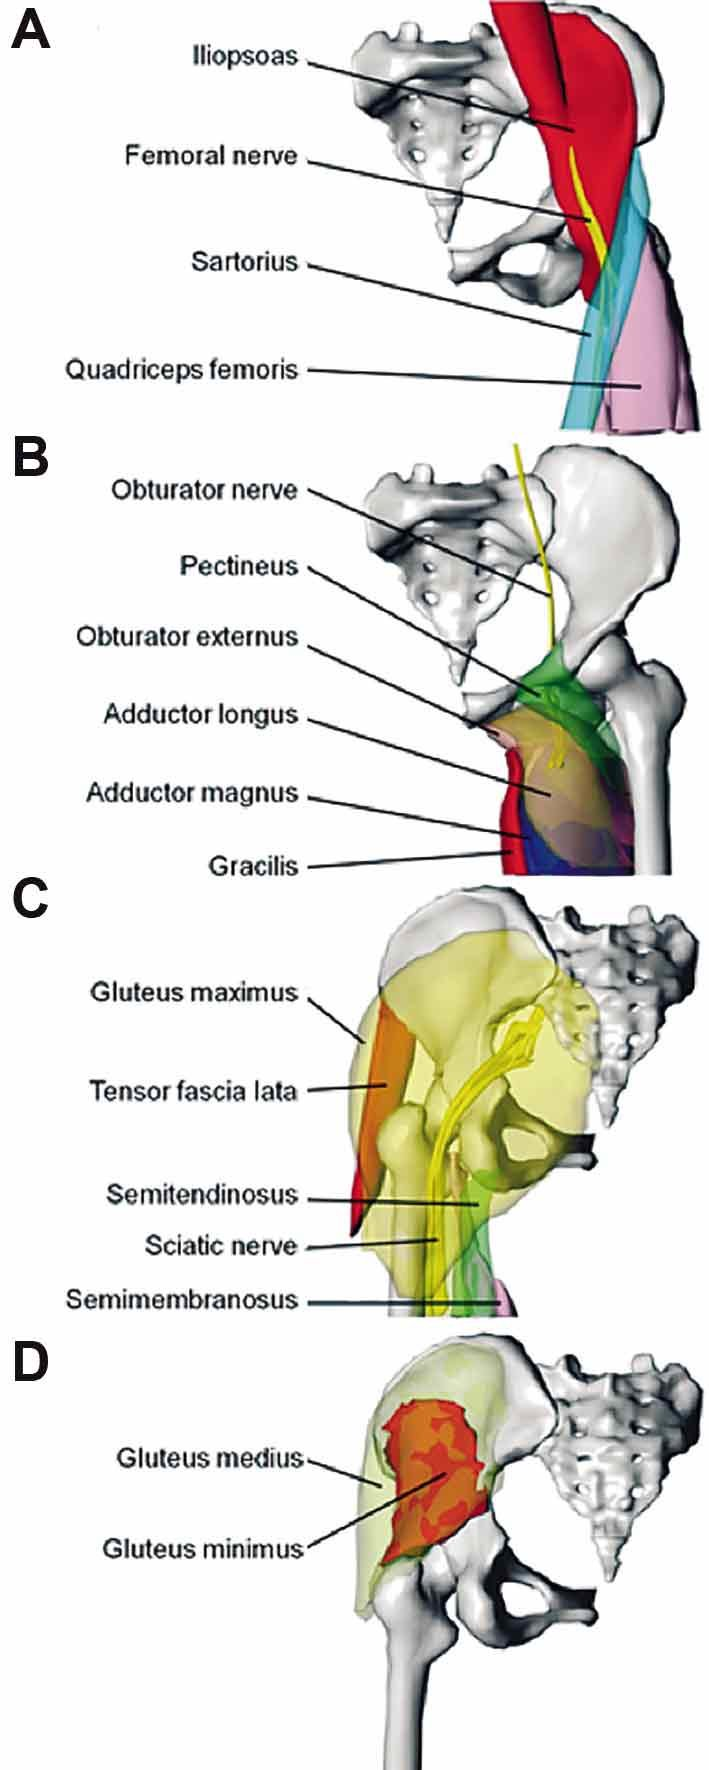 hight resolution of surface models of the hip joint muscles and their innervating nerves muscles are roughly categorized into the flexors a and adductors b shown in the